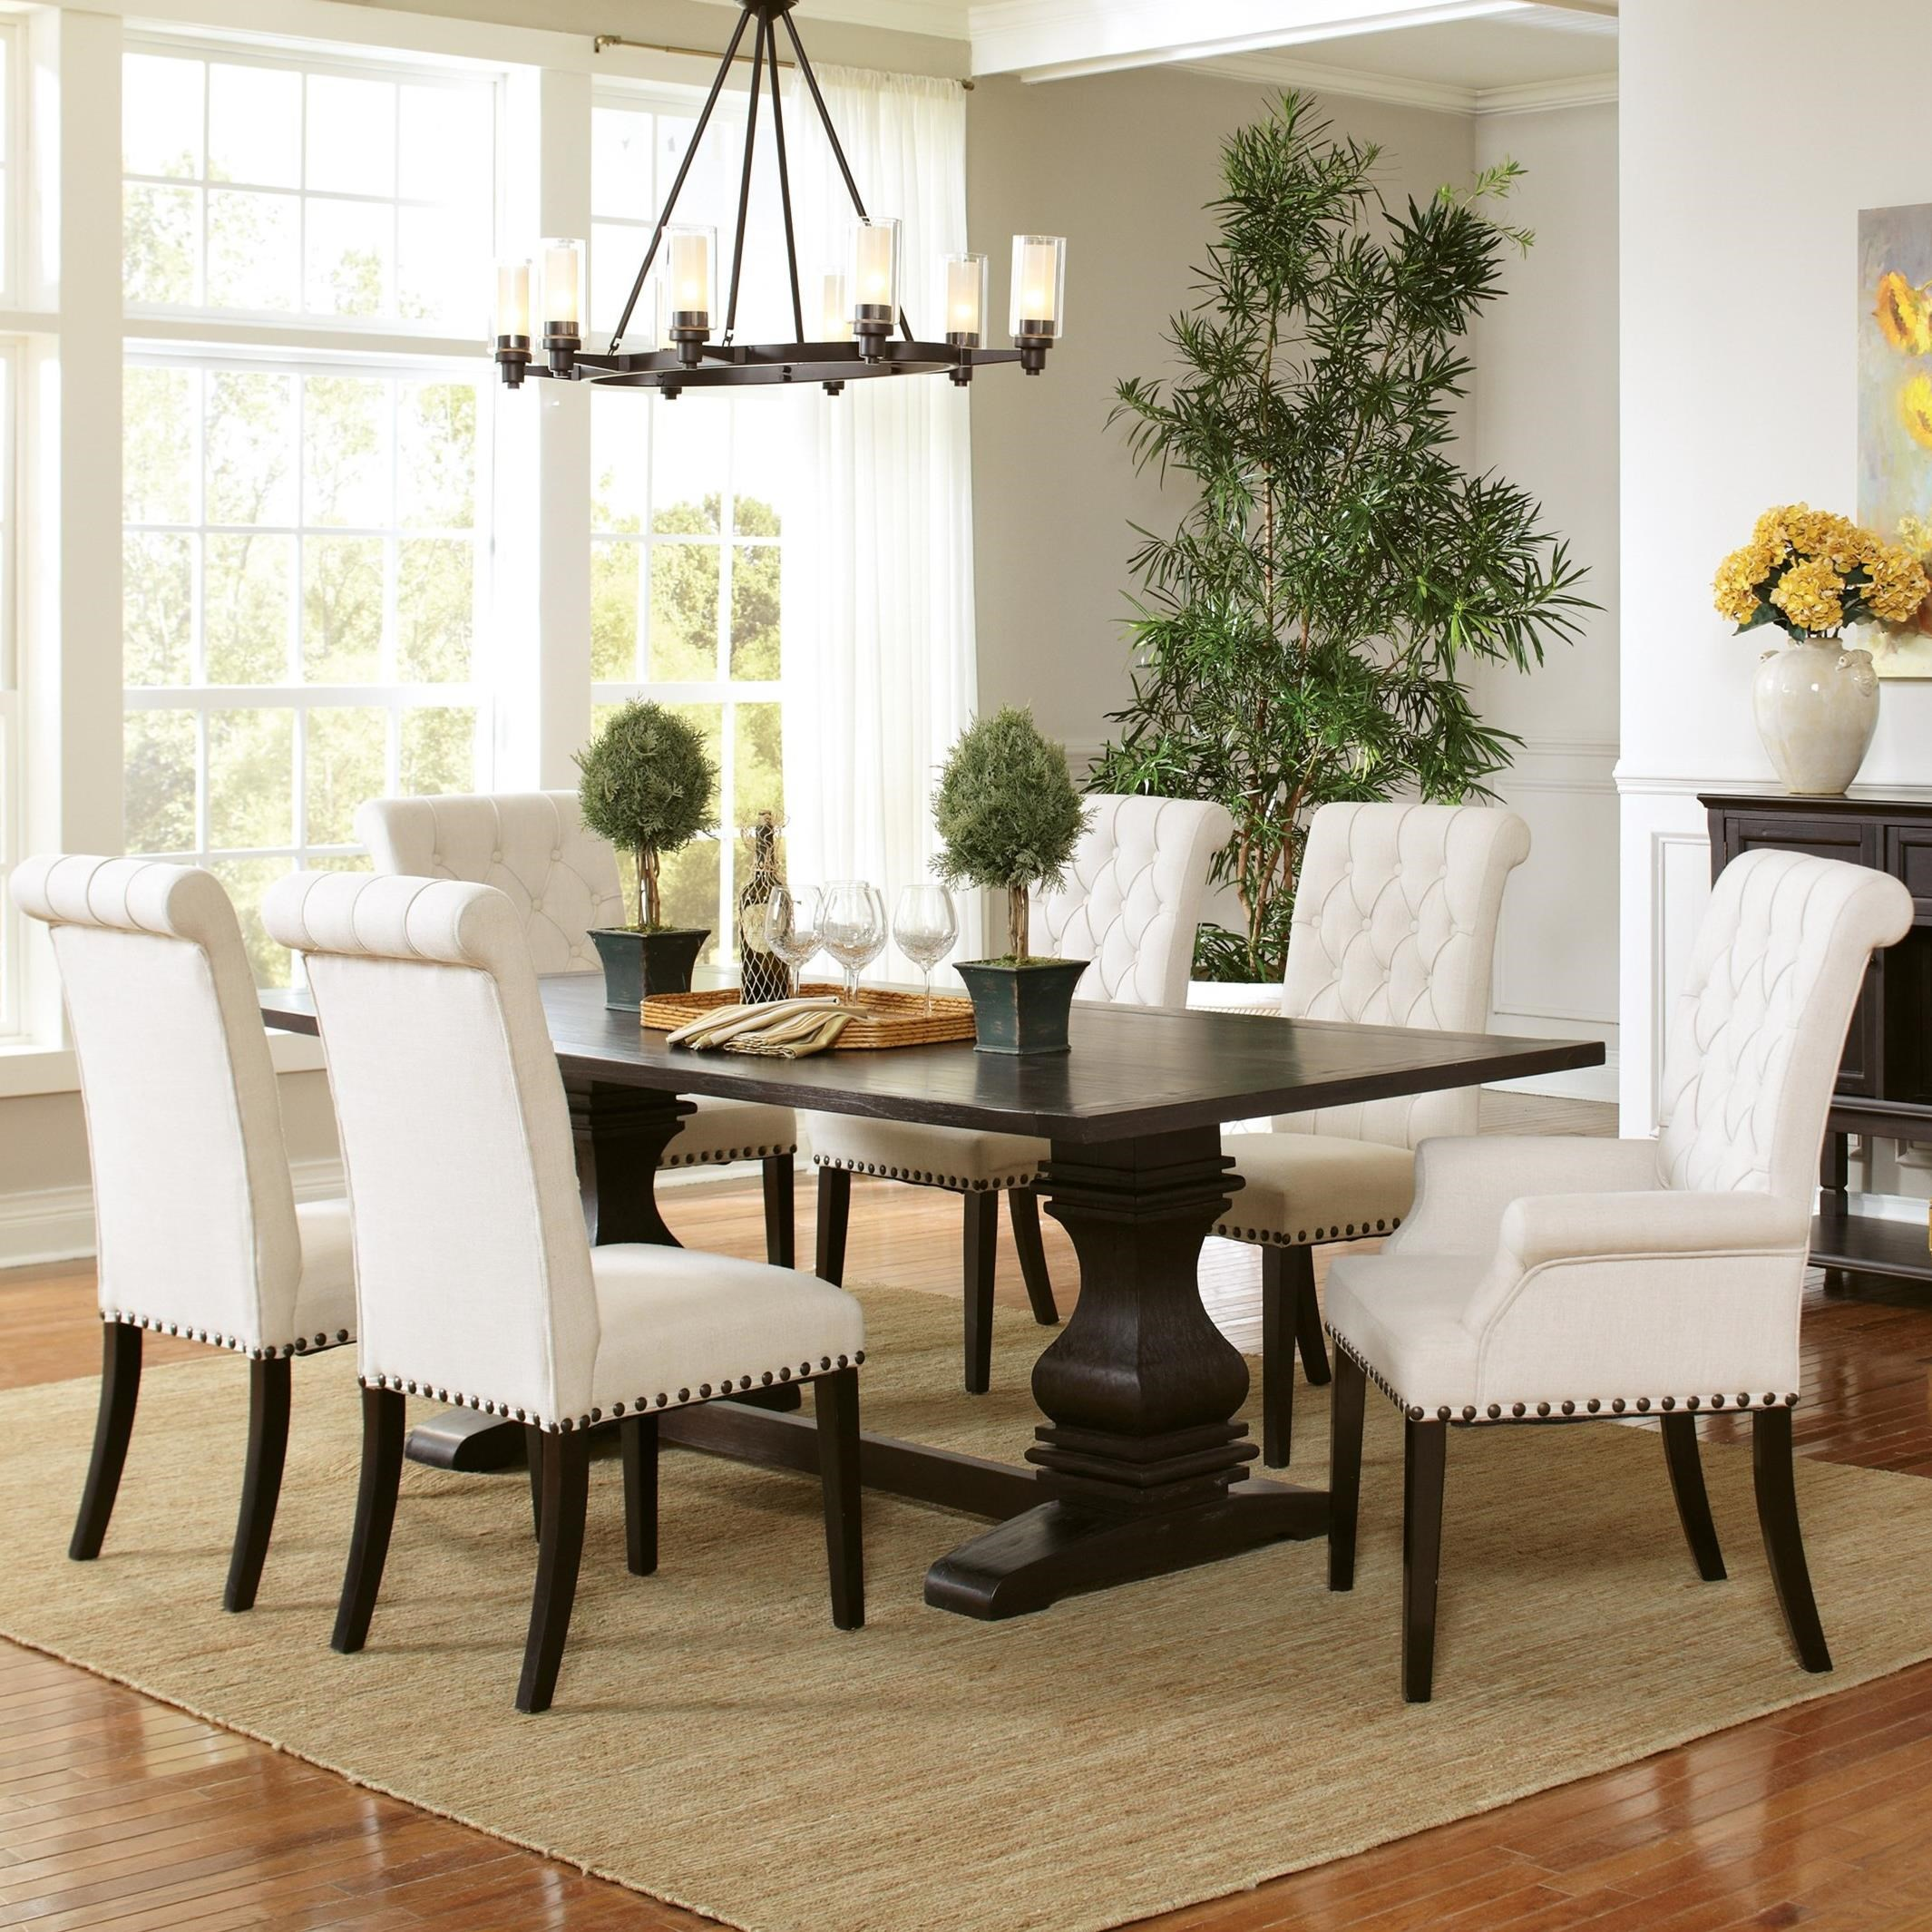 Dining Room Sets Dallas Tx: Coaster Parkins 7pc Espresso Rectangular Dining Table Set